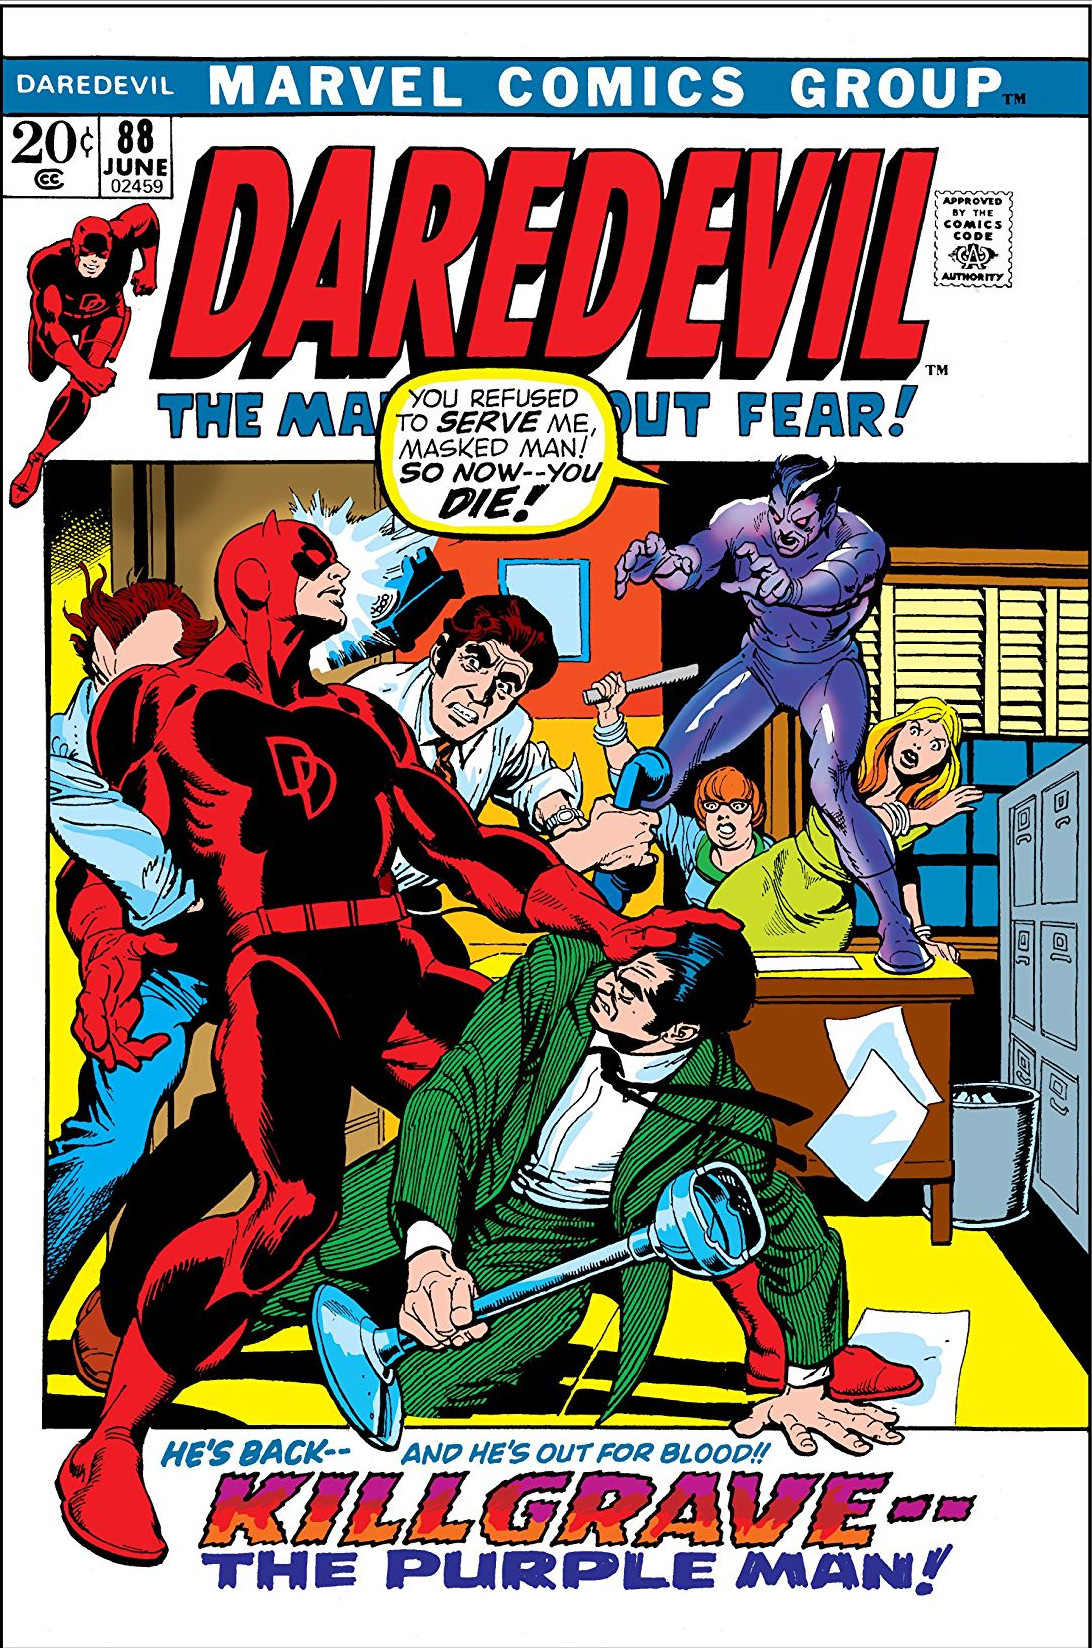 Daredevil Vol 1 88